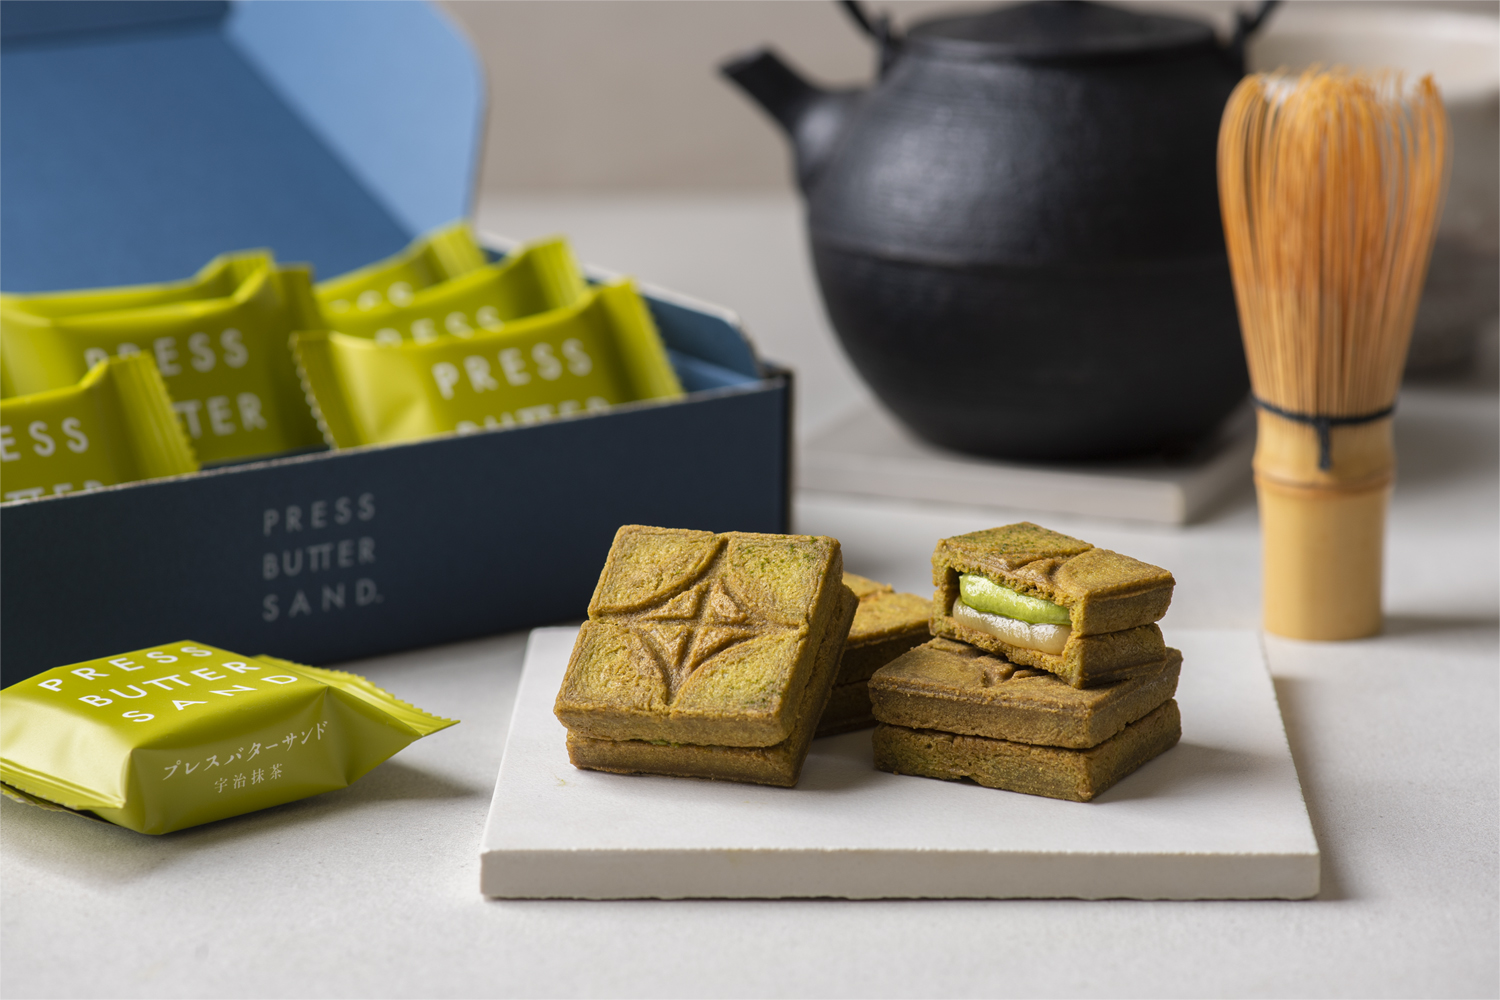 PRESS BUTTER SAND Matcha biscuits